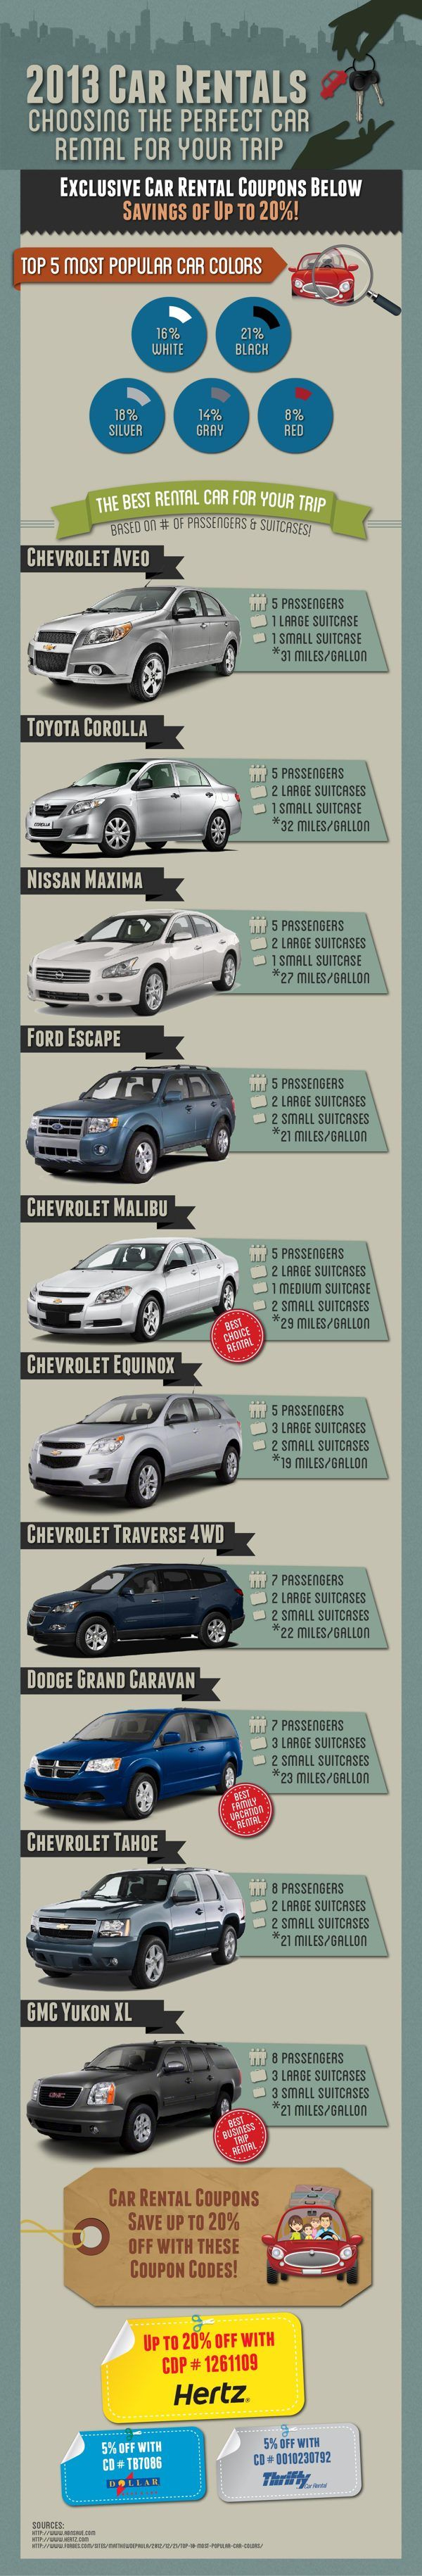 Use our 2013 car rental infographic as not only your car rental savings guide